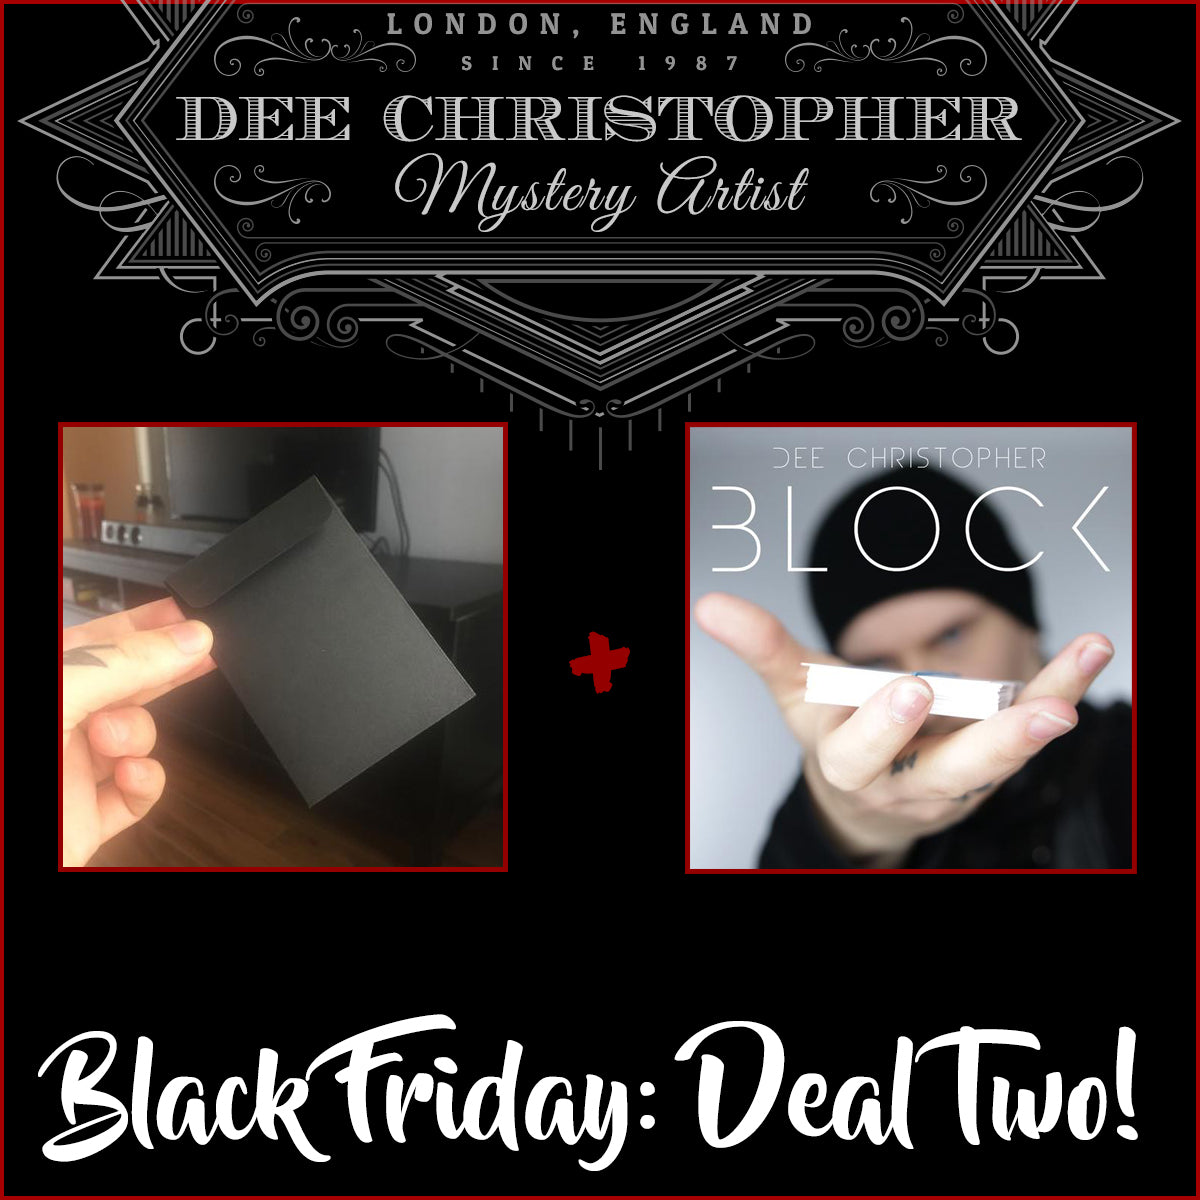 Black Friday: Deal Two